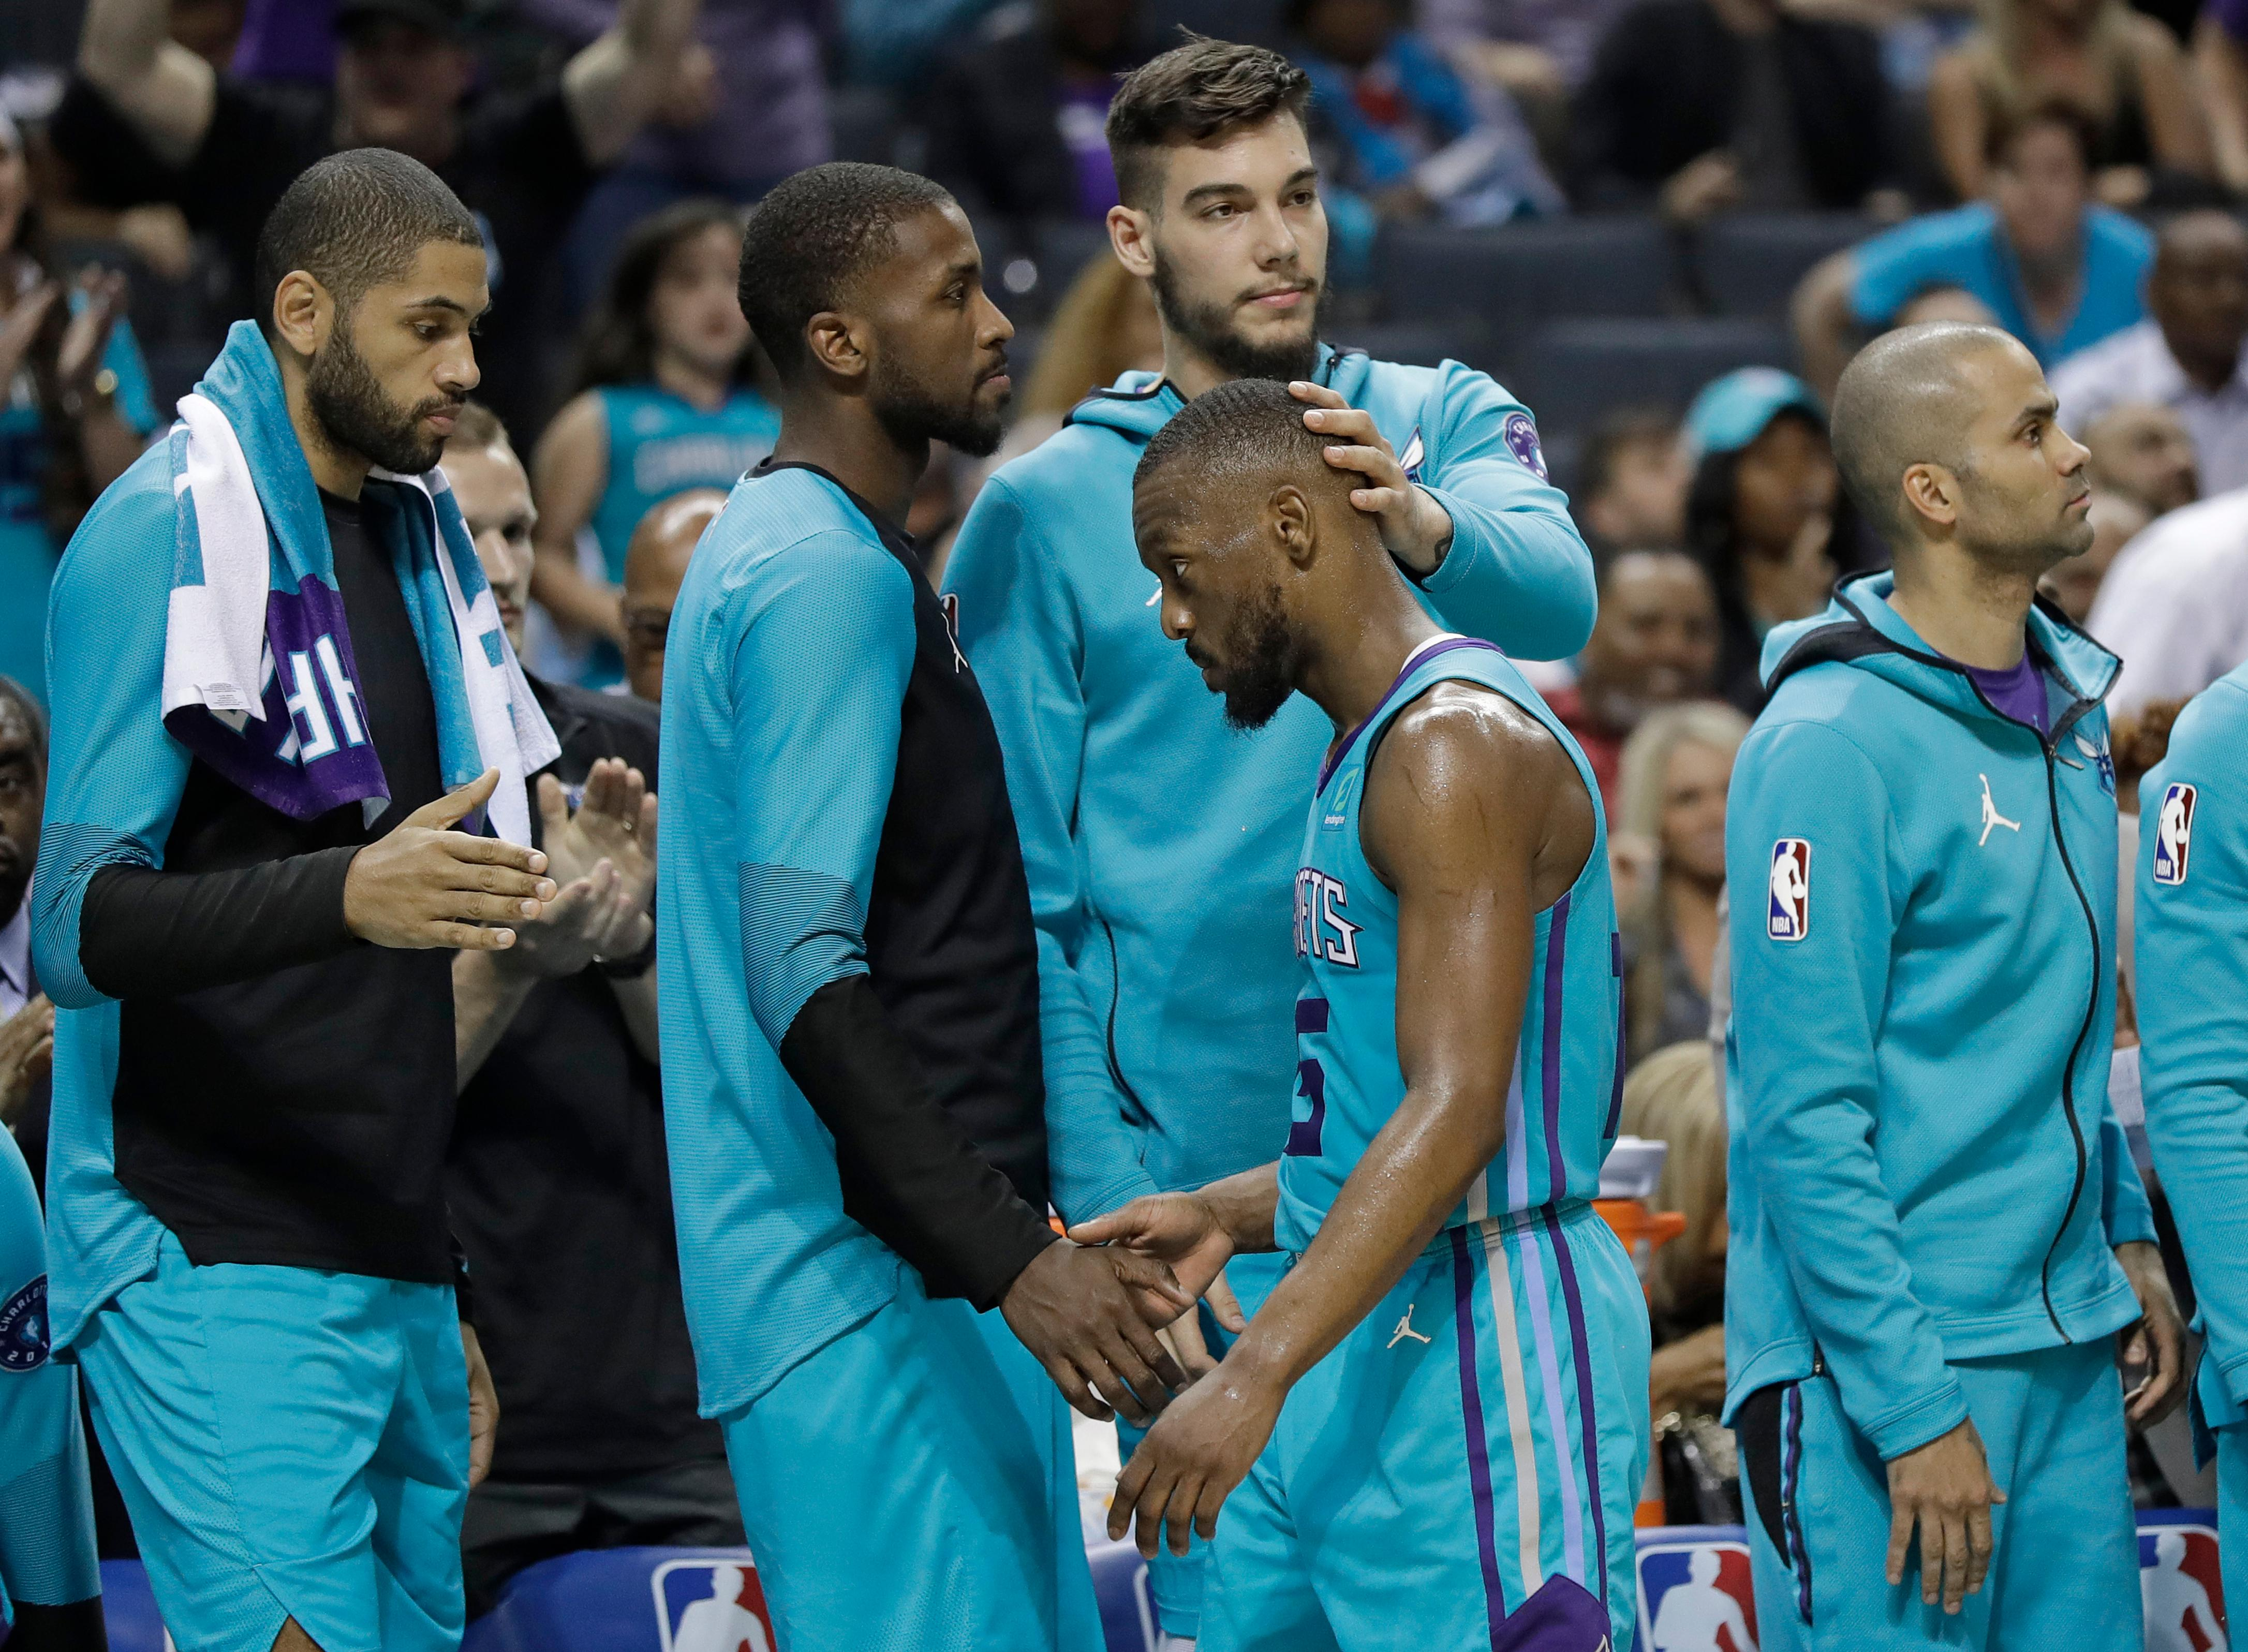 File-THis April 10, 2019, file photo shows Charlotte Hornets' Kemba Walker, center, being greeted by teammates as he leaves the NBA basketball game against the Orlando Magic late in the second half, in Charlotte, N.C. A person with knowledge of the situation says Kemba Walker has told the Charlotte Hornets of his intention to sign with the Boston Celtics once the NBA's offseason moratorium ends July 6. Walker is planning to meet with the Celtics on Sunday, June 30, 2019, to discuss and likely finalize a four-year, $141 million deal, according to the person who spoke to The Associated Press on condition of anonymity because neither Walker nor the Hornets publicly revealed any details. (AP Photo/Chuck Burton,File)